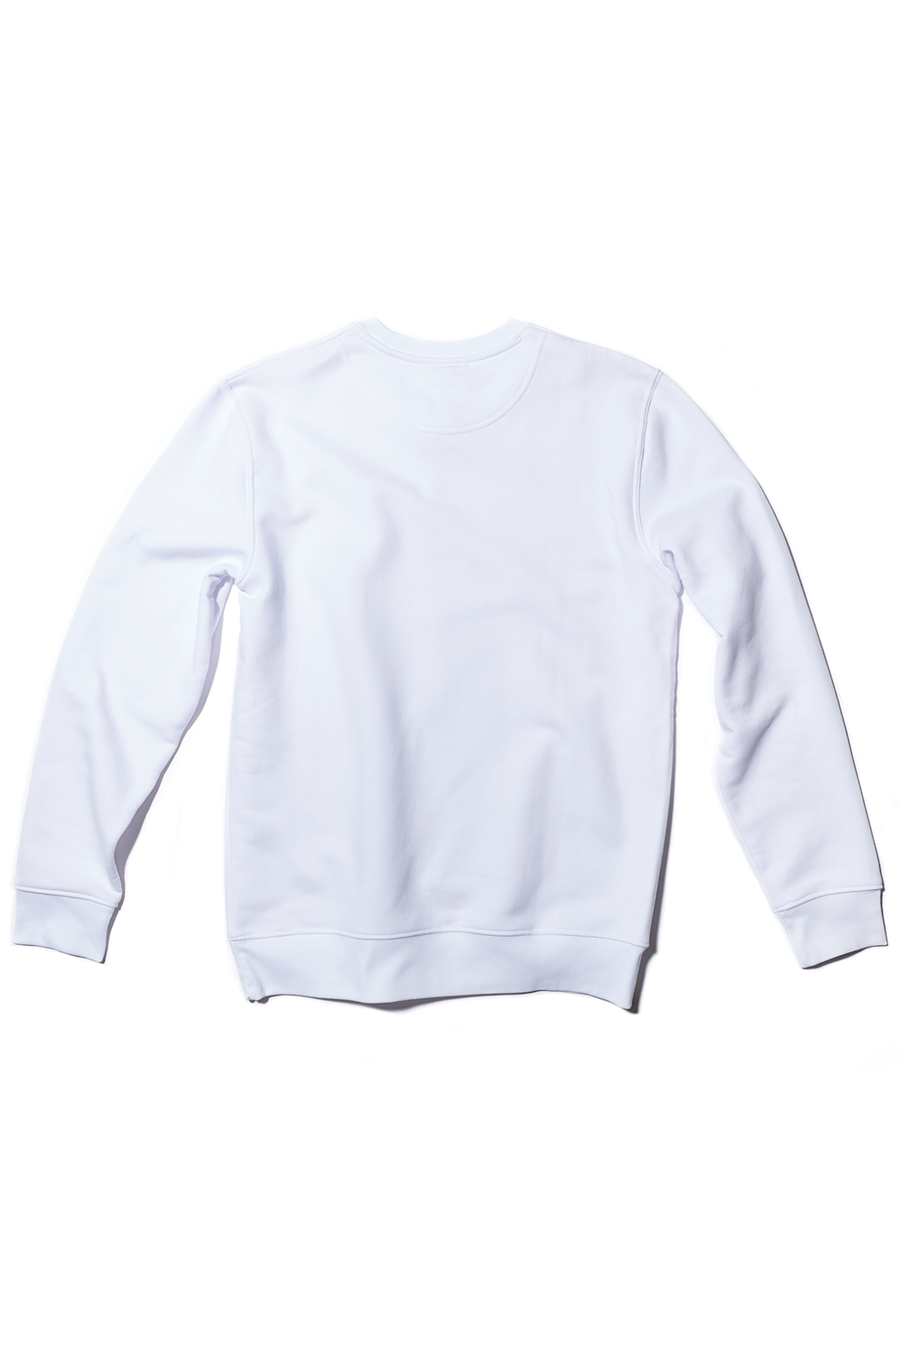 White Crewneck Embroidered Don't Look Sweatshirt